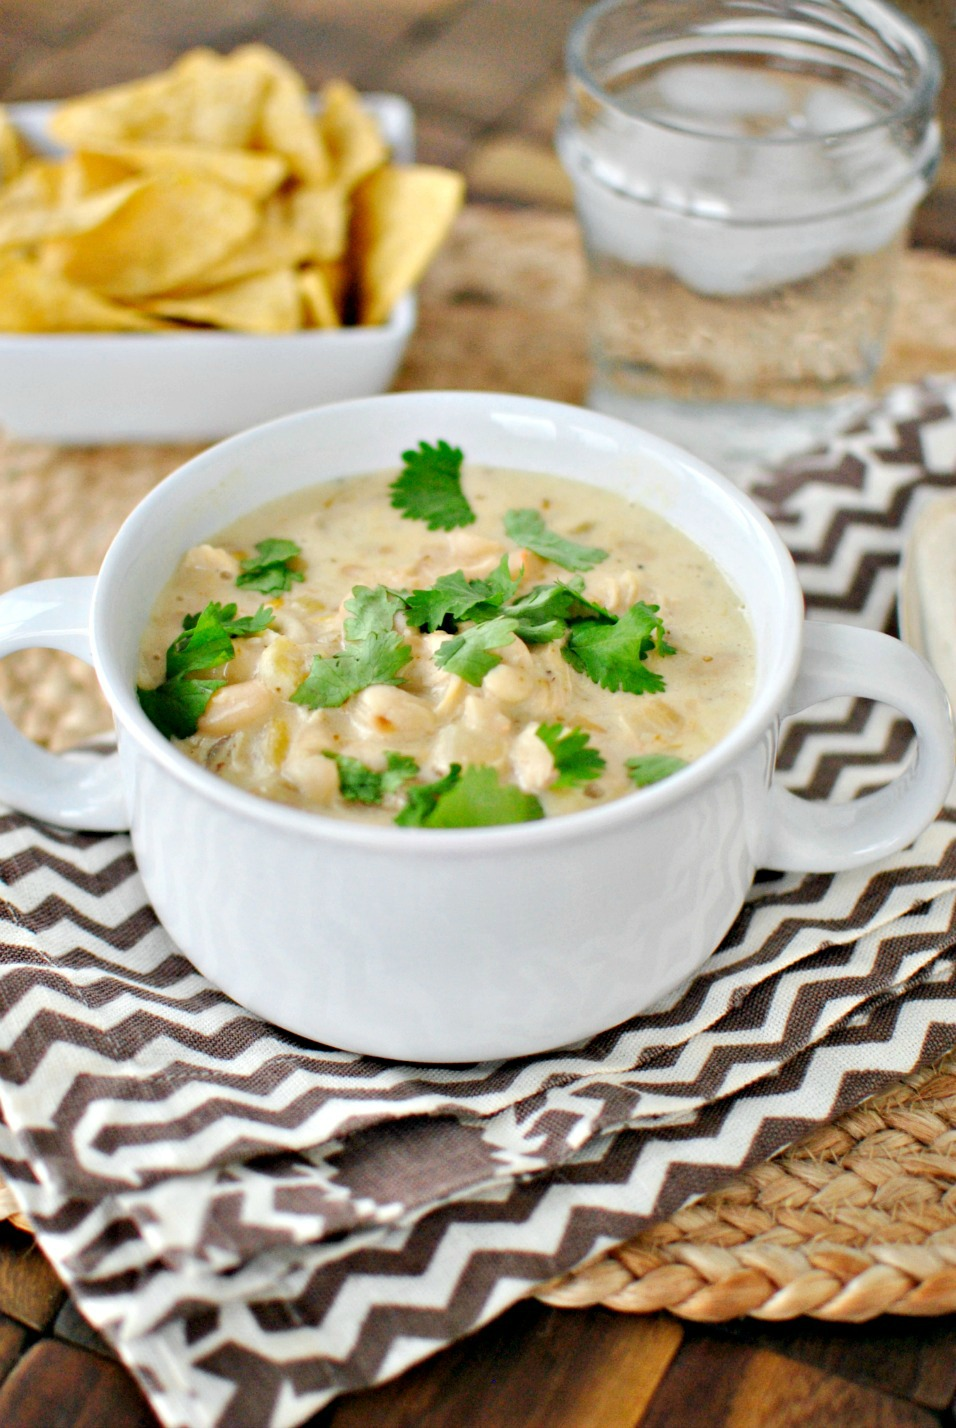 Simply Scratch Creamy White Chicken Chili - Simply Scratch